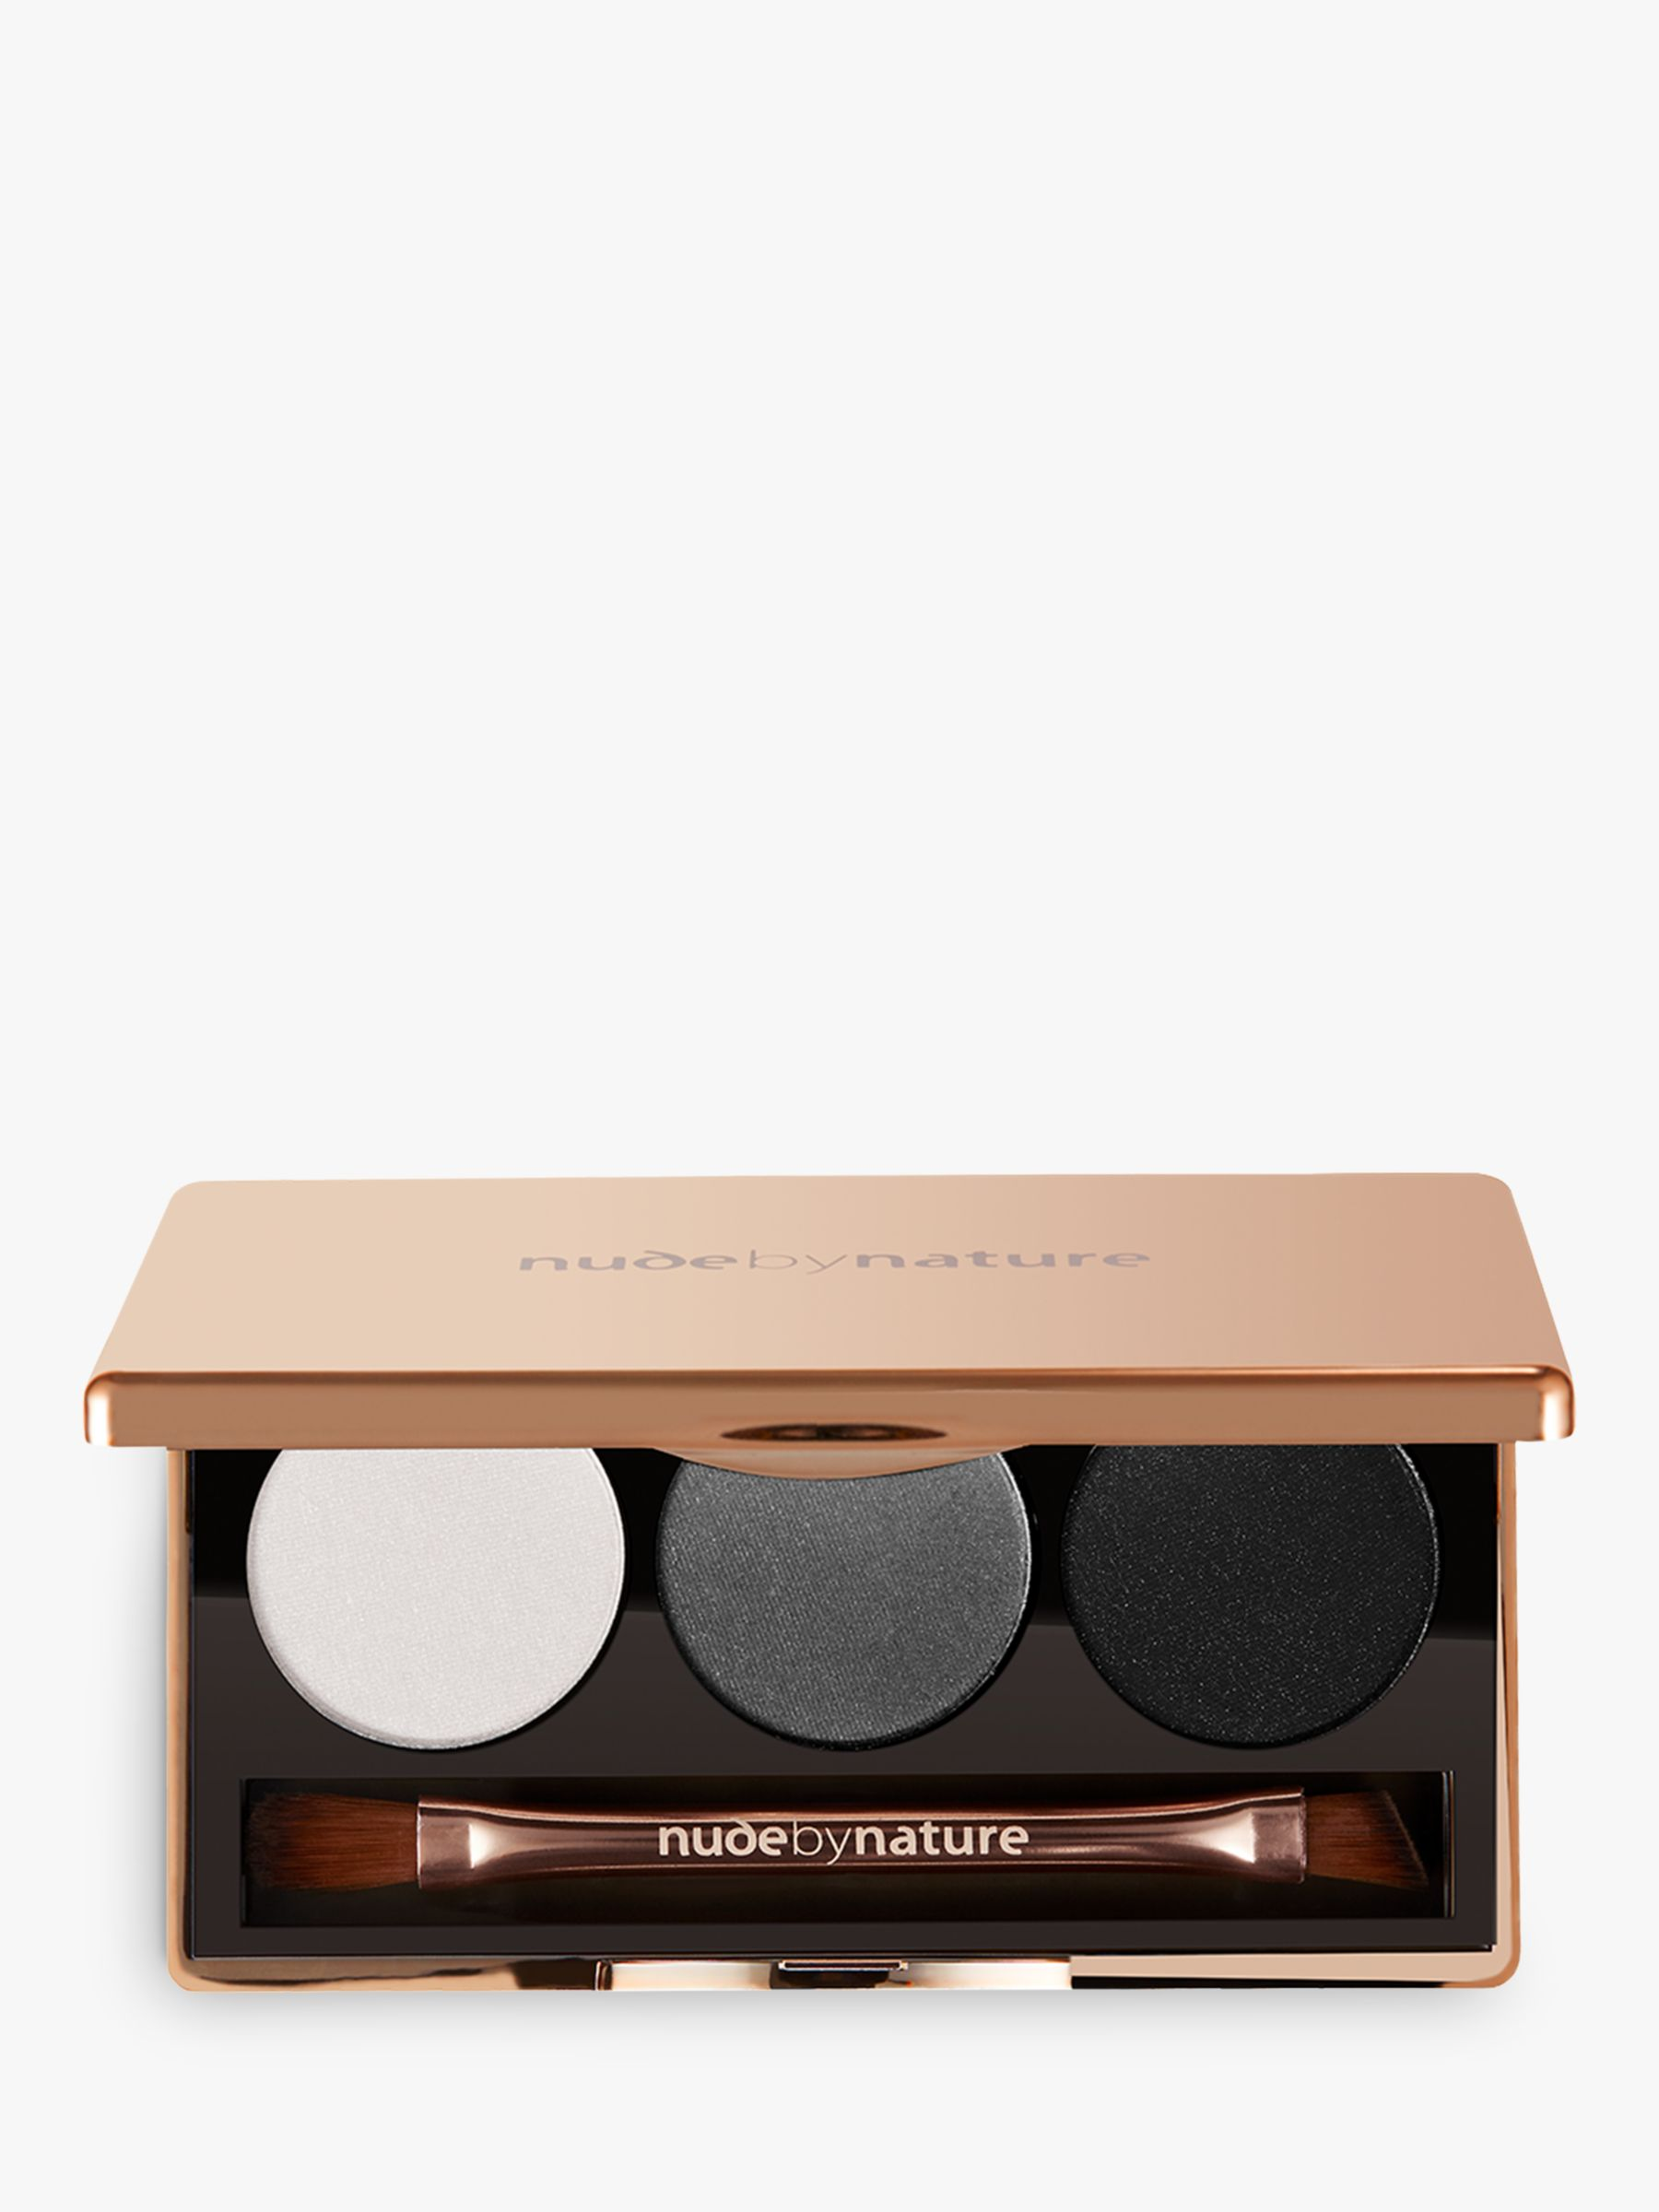 Nude by Nature Nude by Nature Natural Illusion Eyeshadow Trio, 02 Smoky